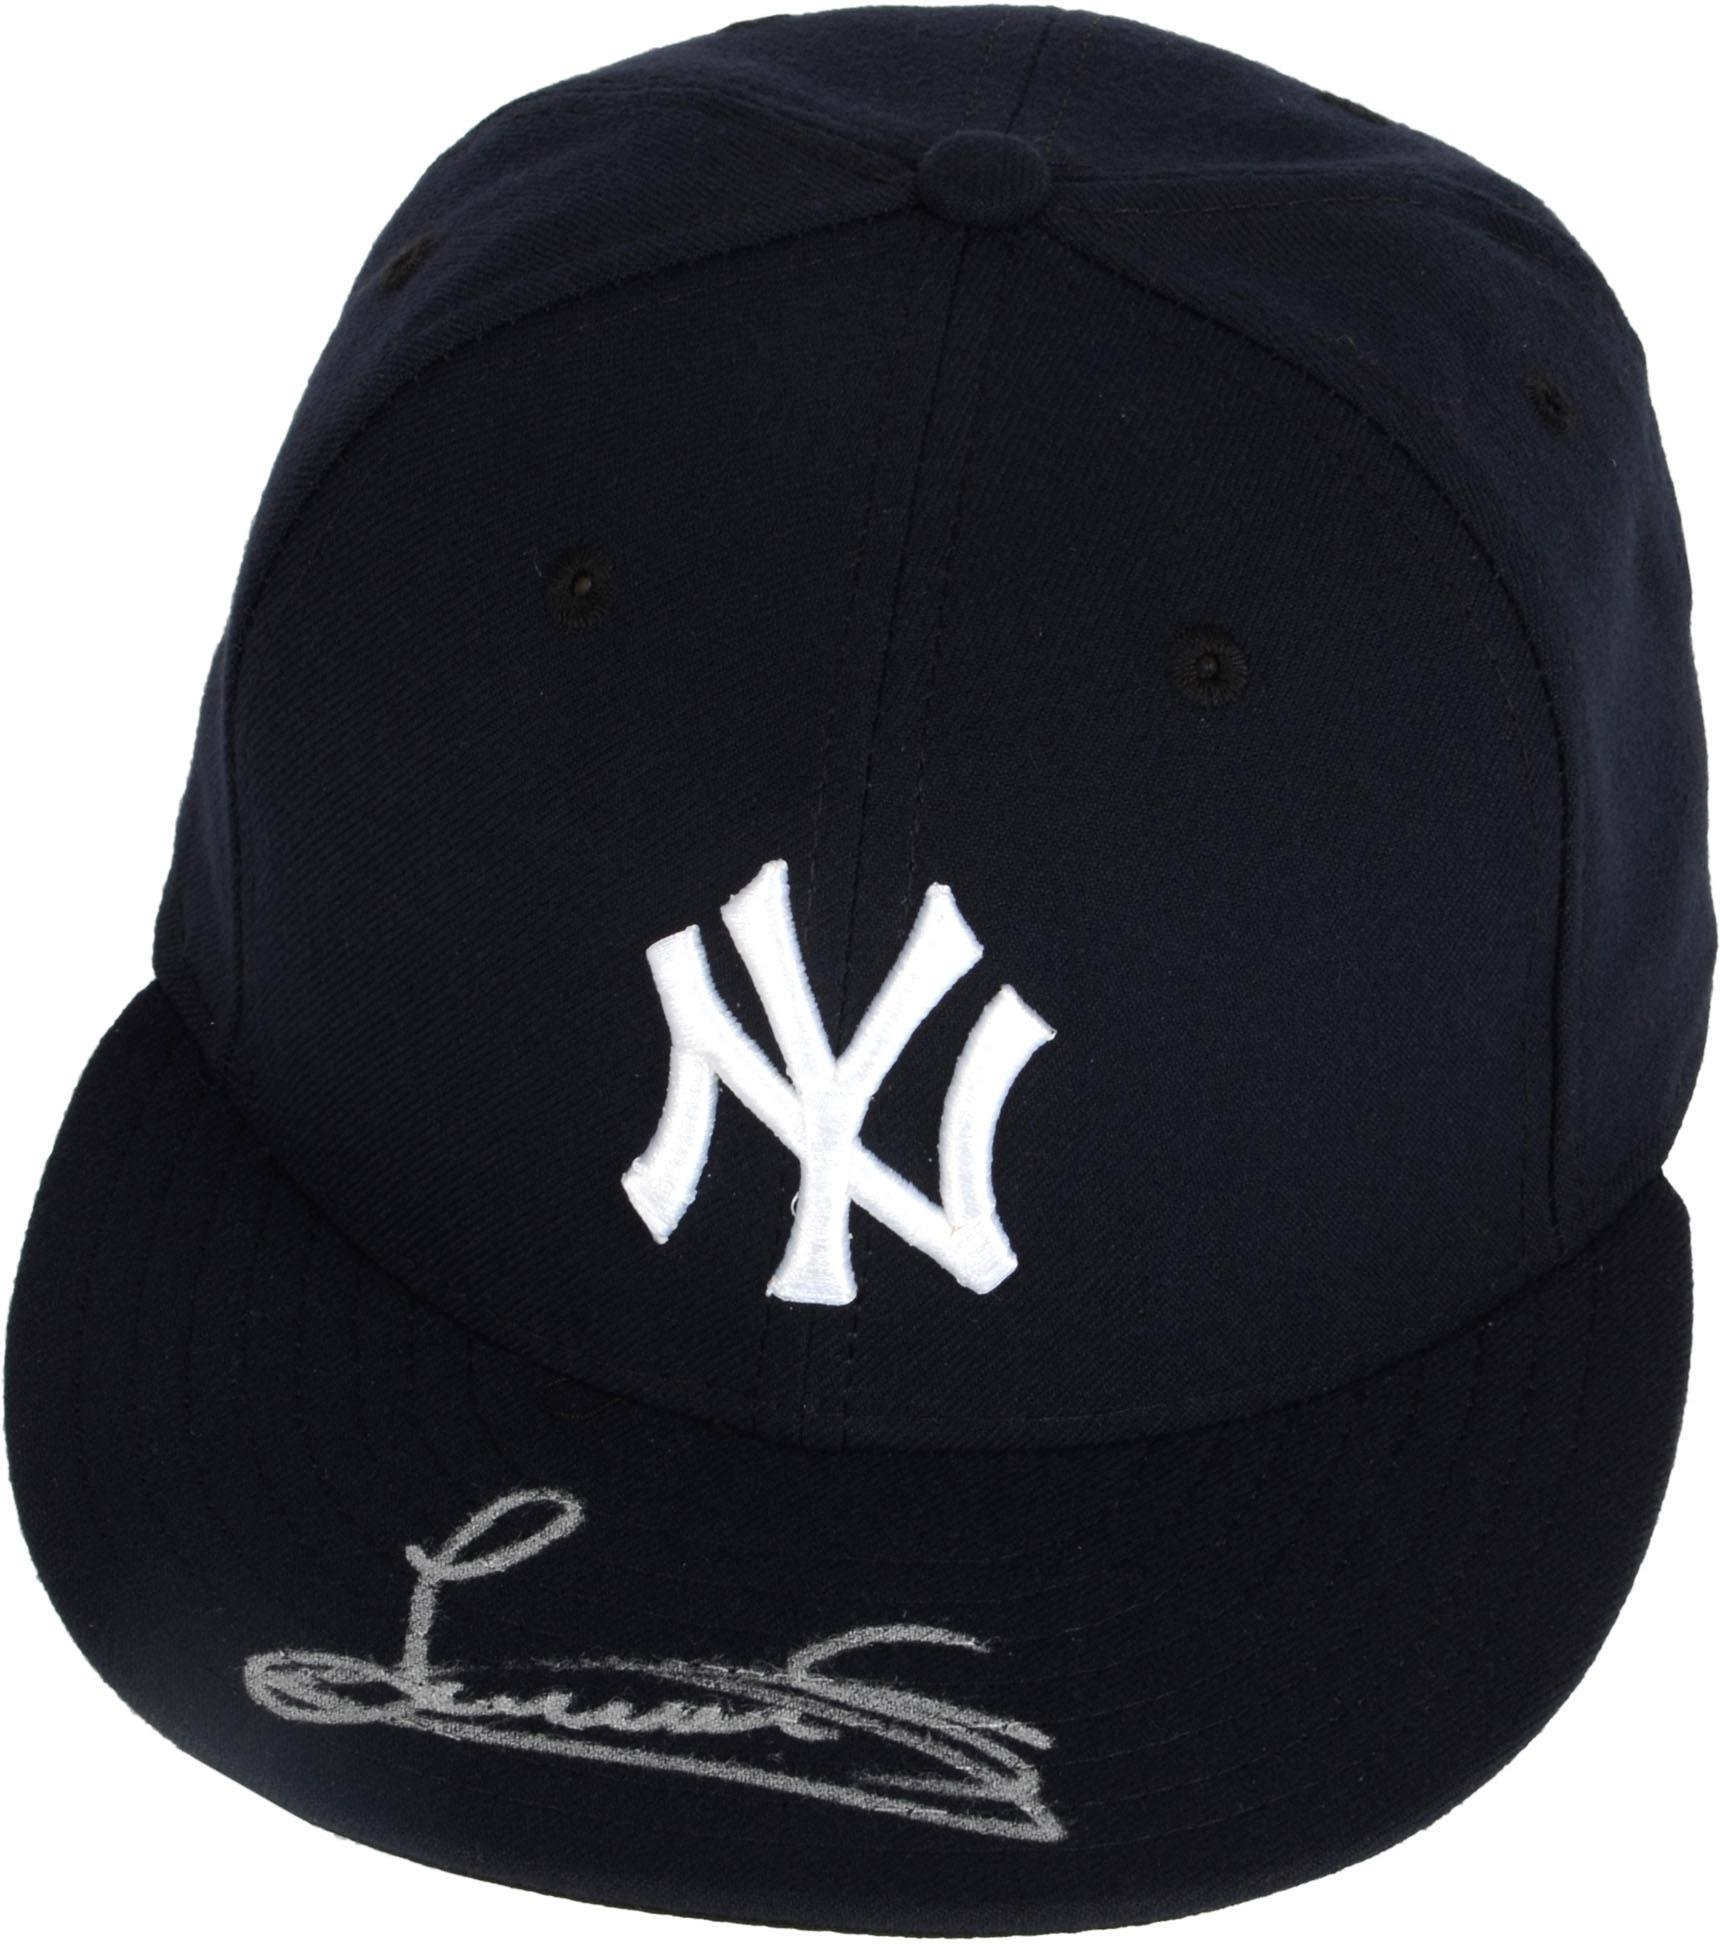 Luis Severino New York Yankees Autographed Cap Fanatics Authentic Certified Autographed Hats